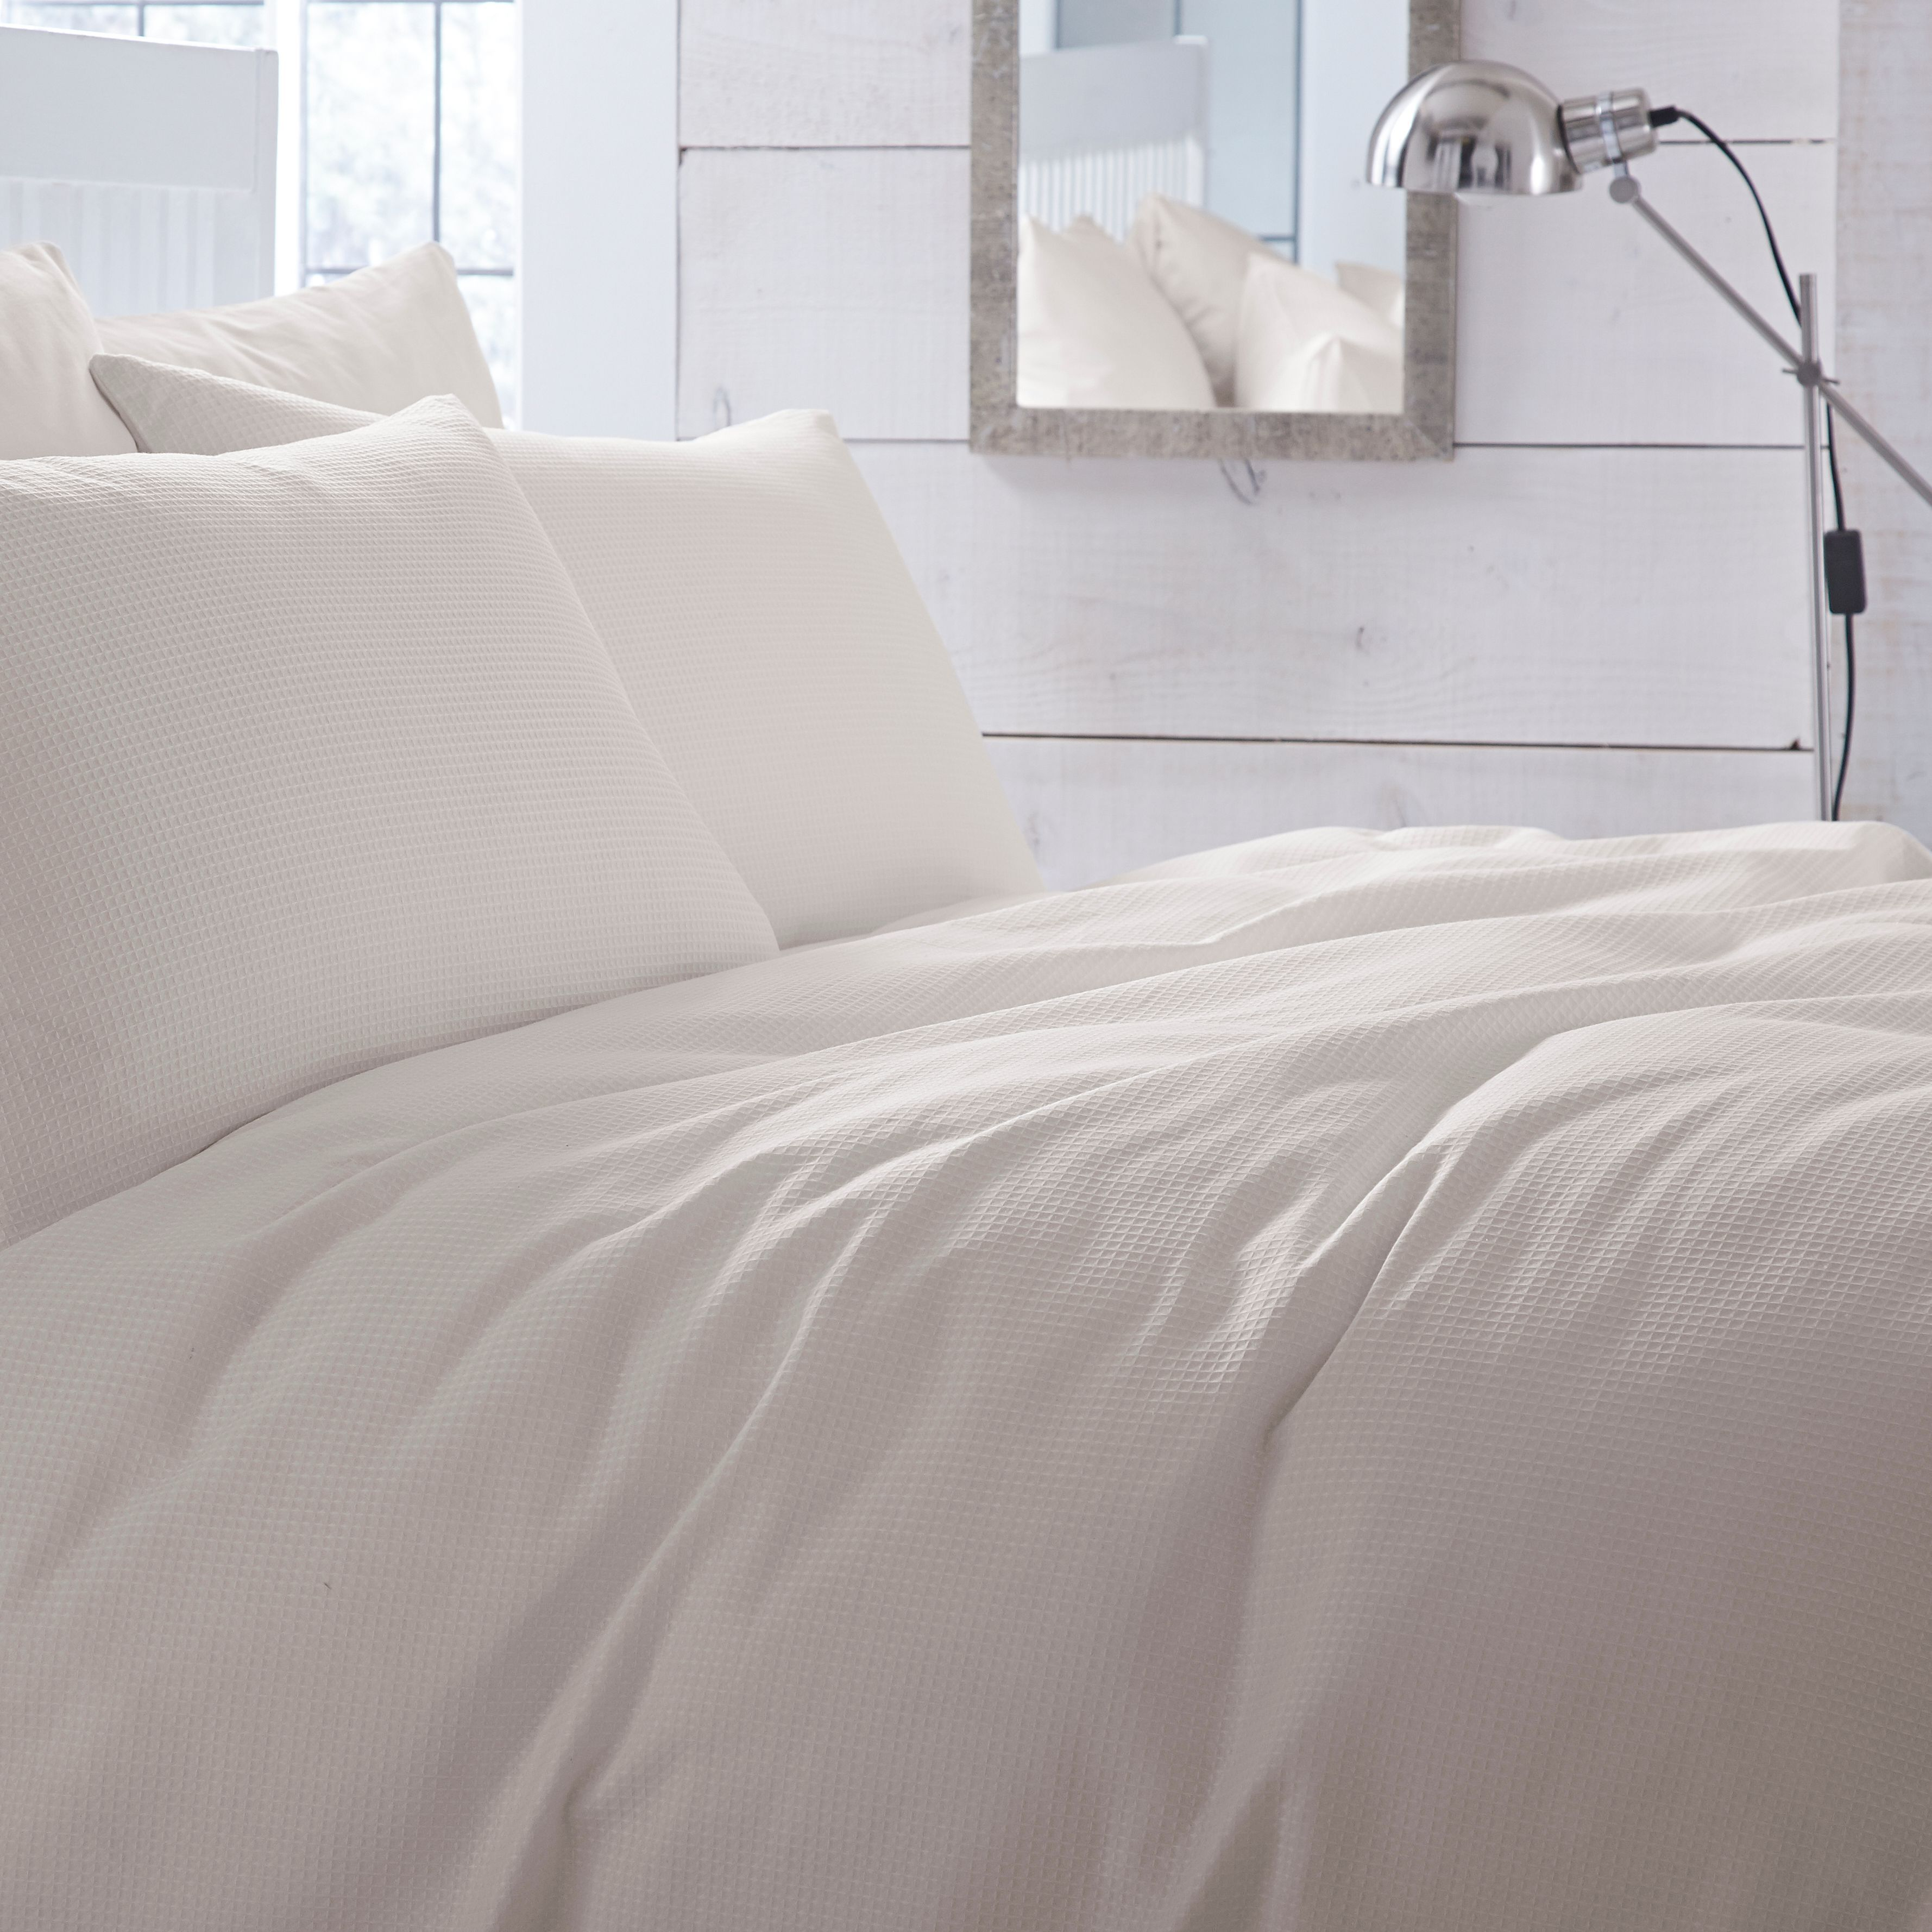 Chartwell Waffle Plain Cream King Size Bed Cover Set